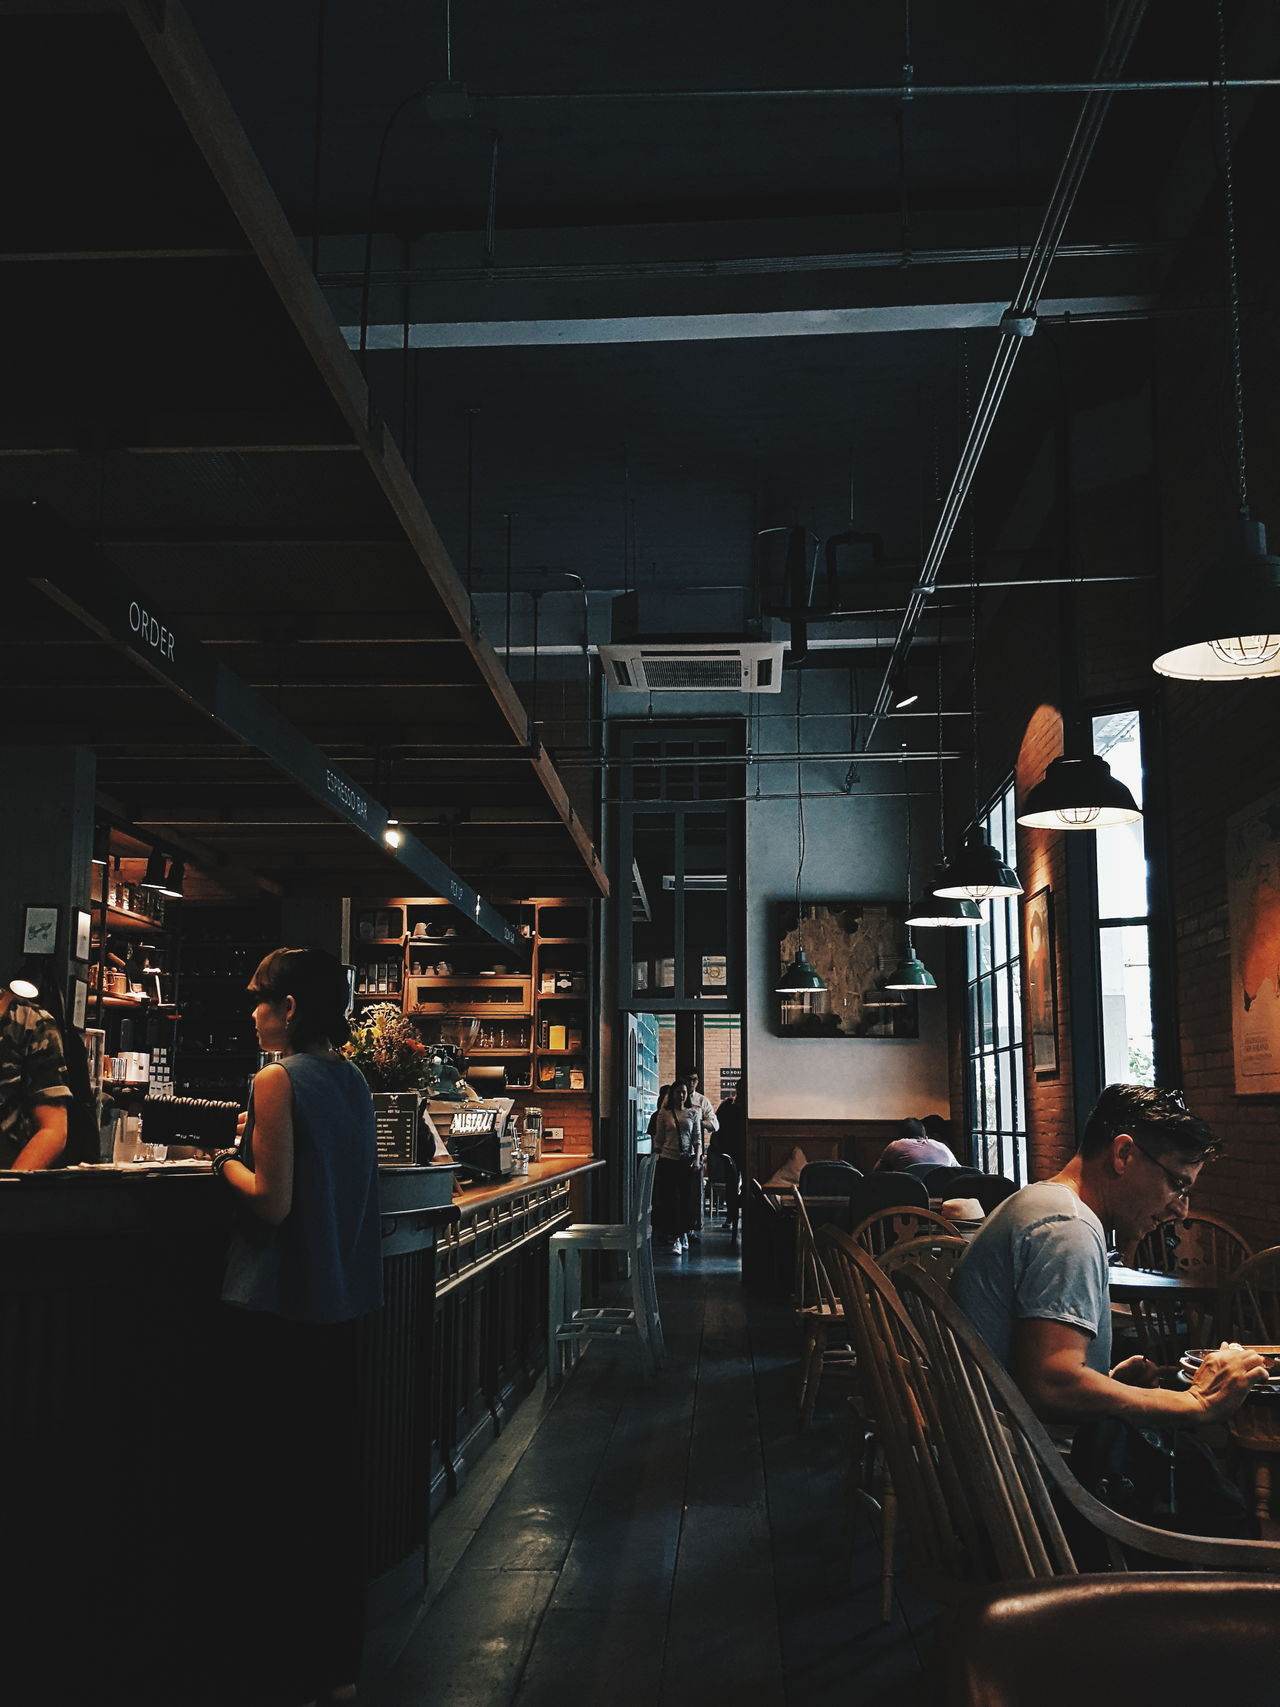 Cafe life in Bangkok Indoors  People Occupation VSCO Bokeh Cool Hipster Mood Indoors  Cultures Cafe Coffee Ambience Dark Chill Bangkok Thailand